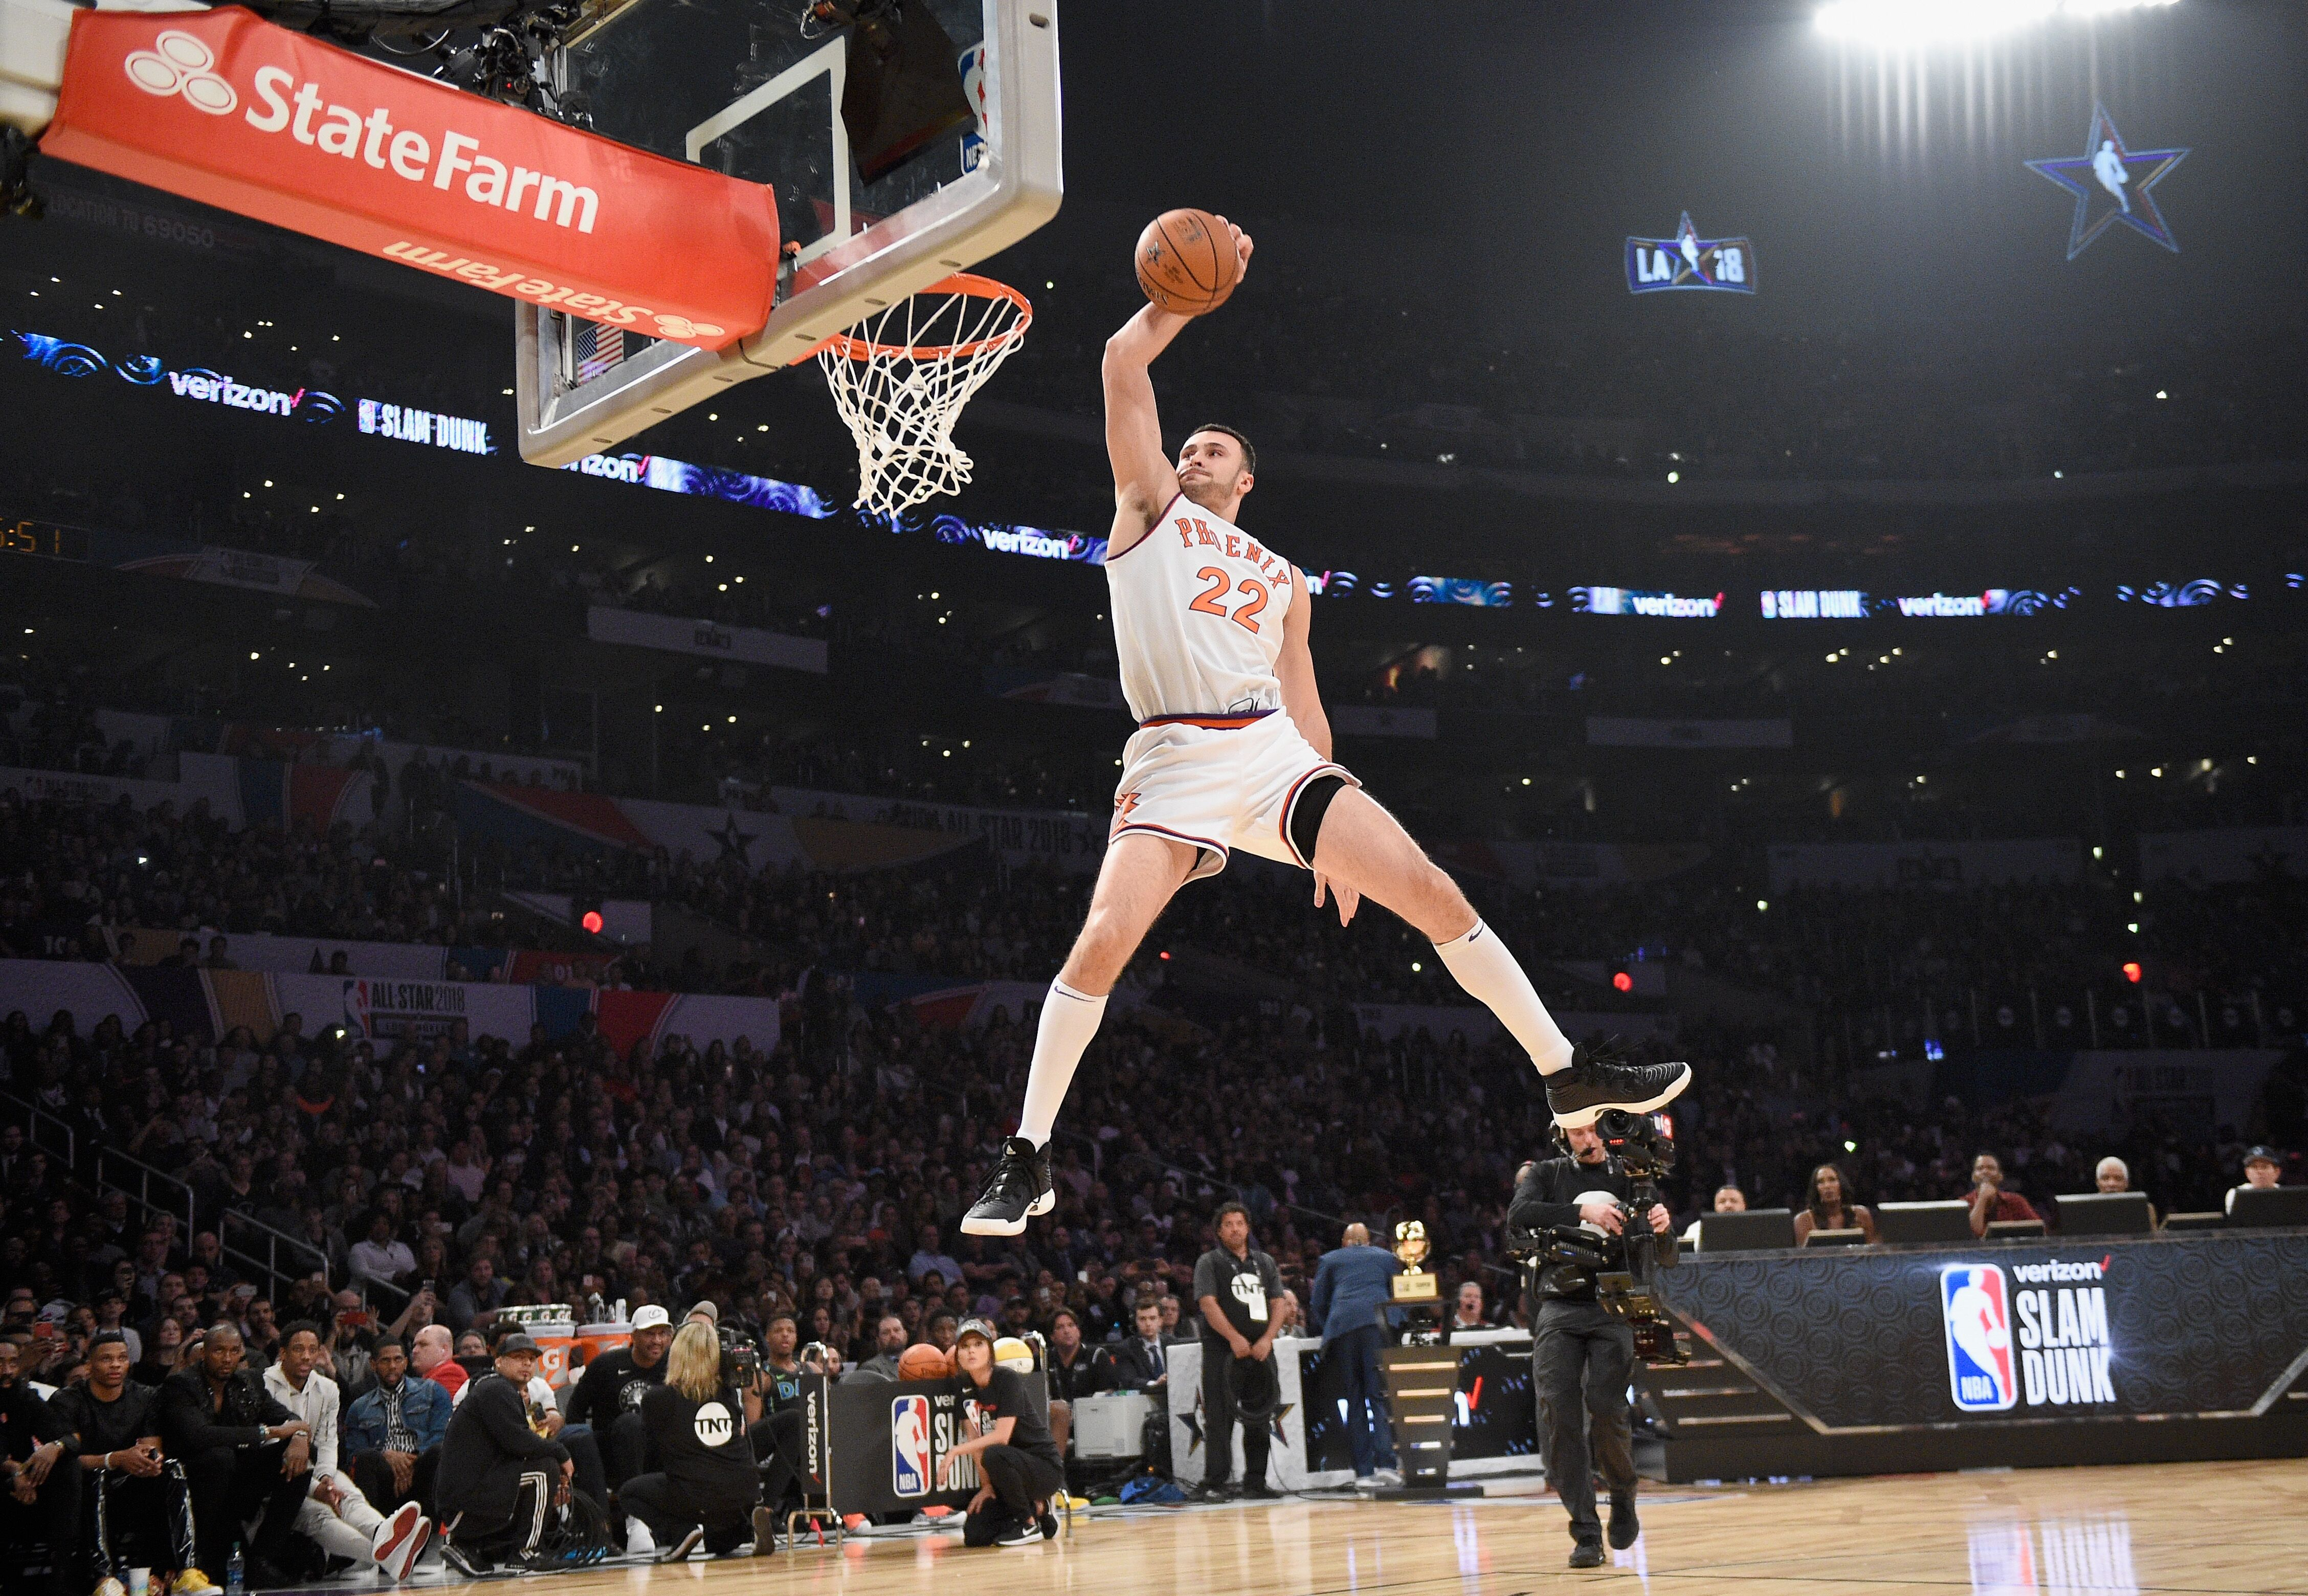 Larry Nance Jr. was robbed in the Slam Dunk Contest